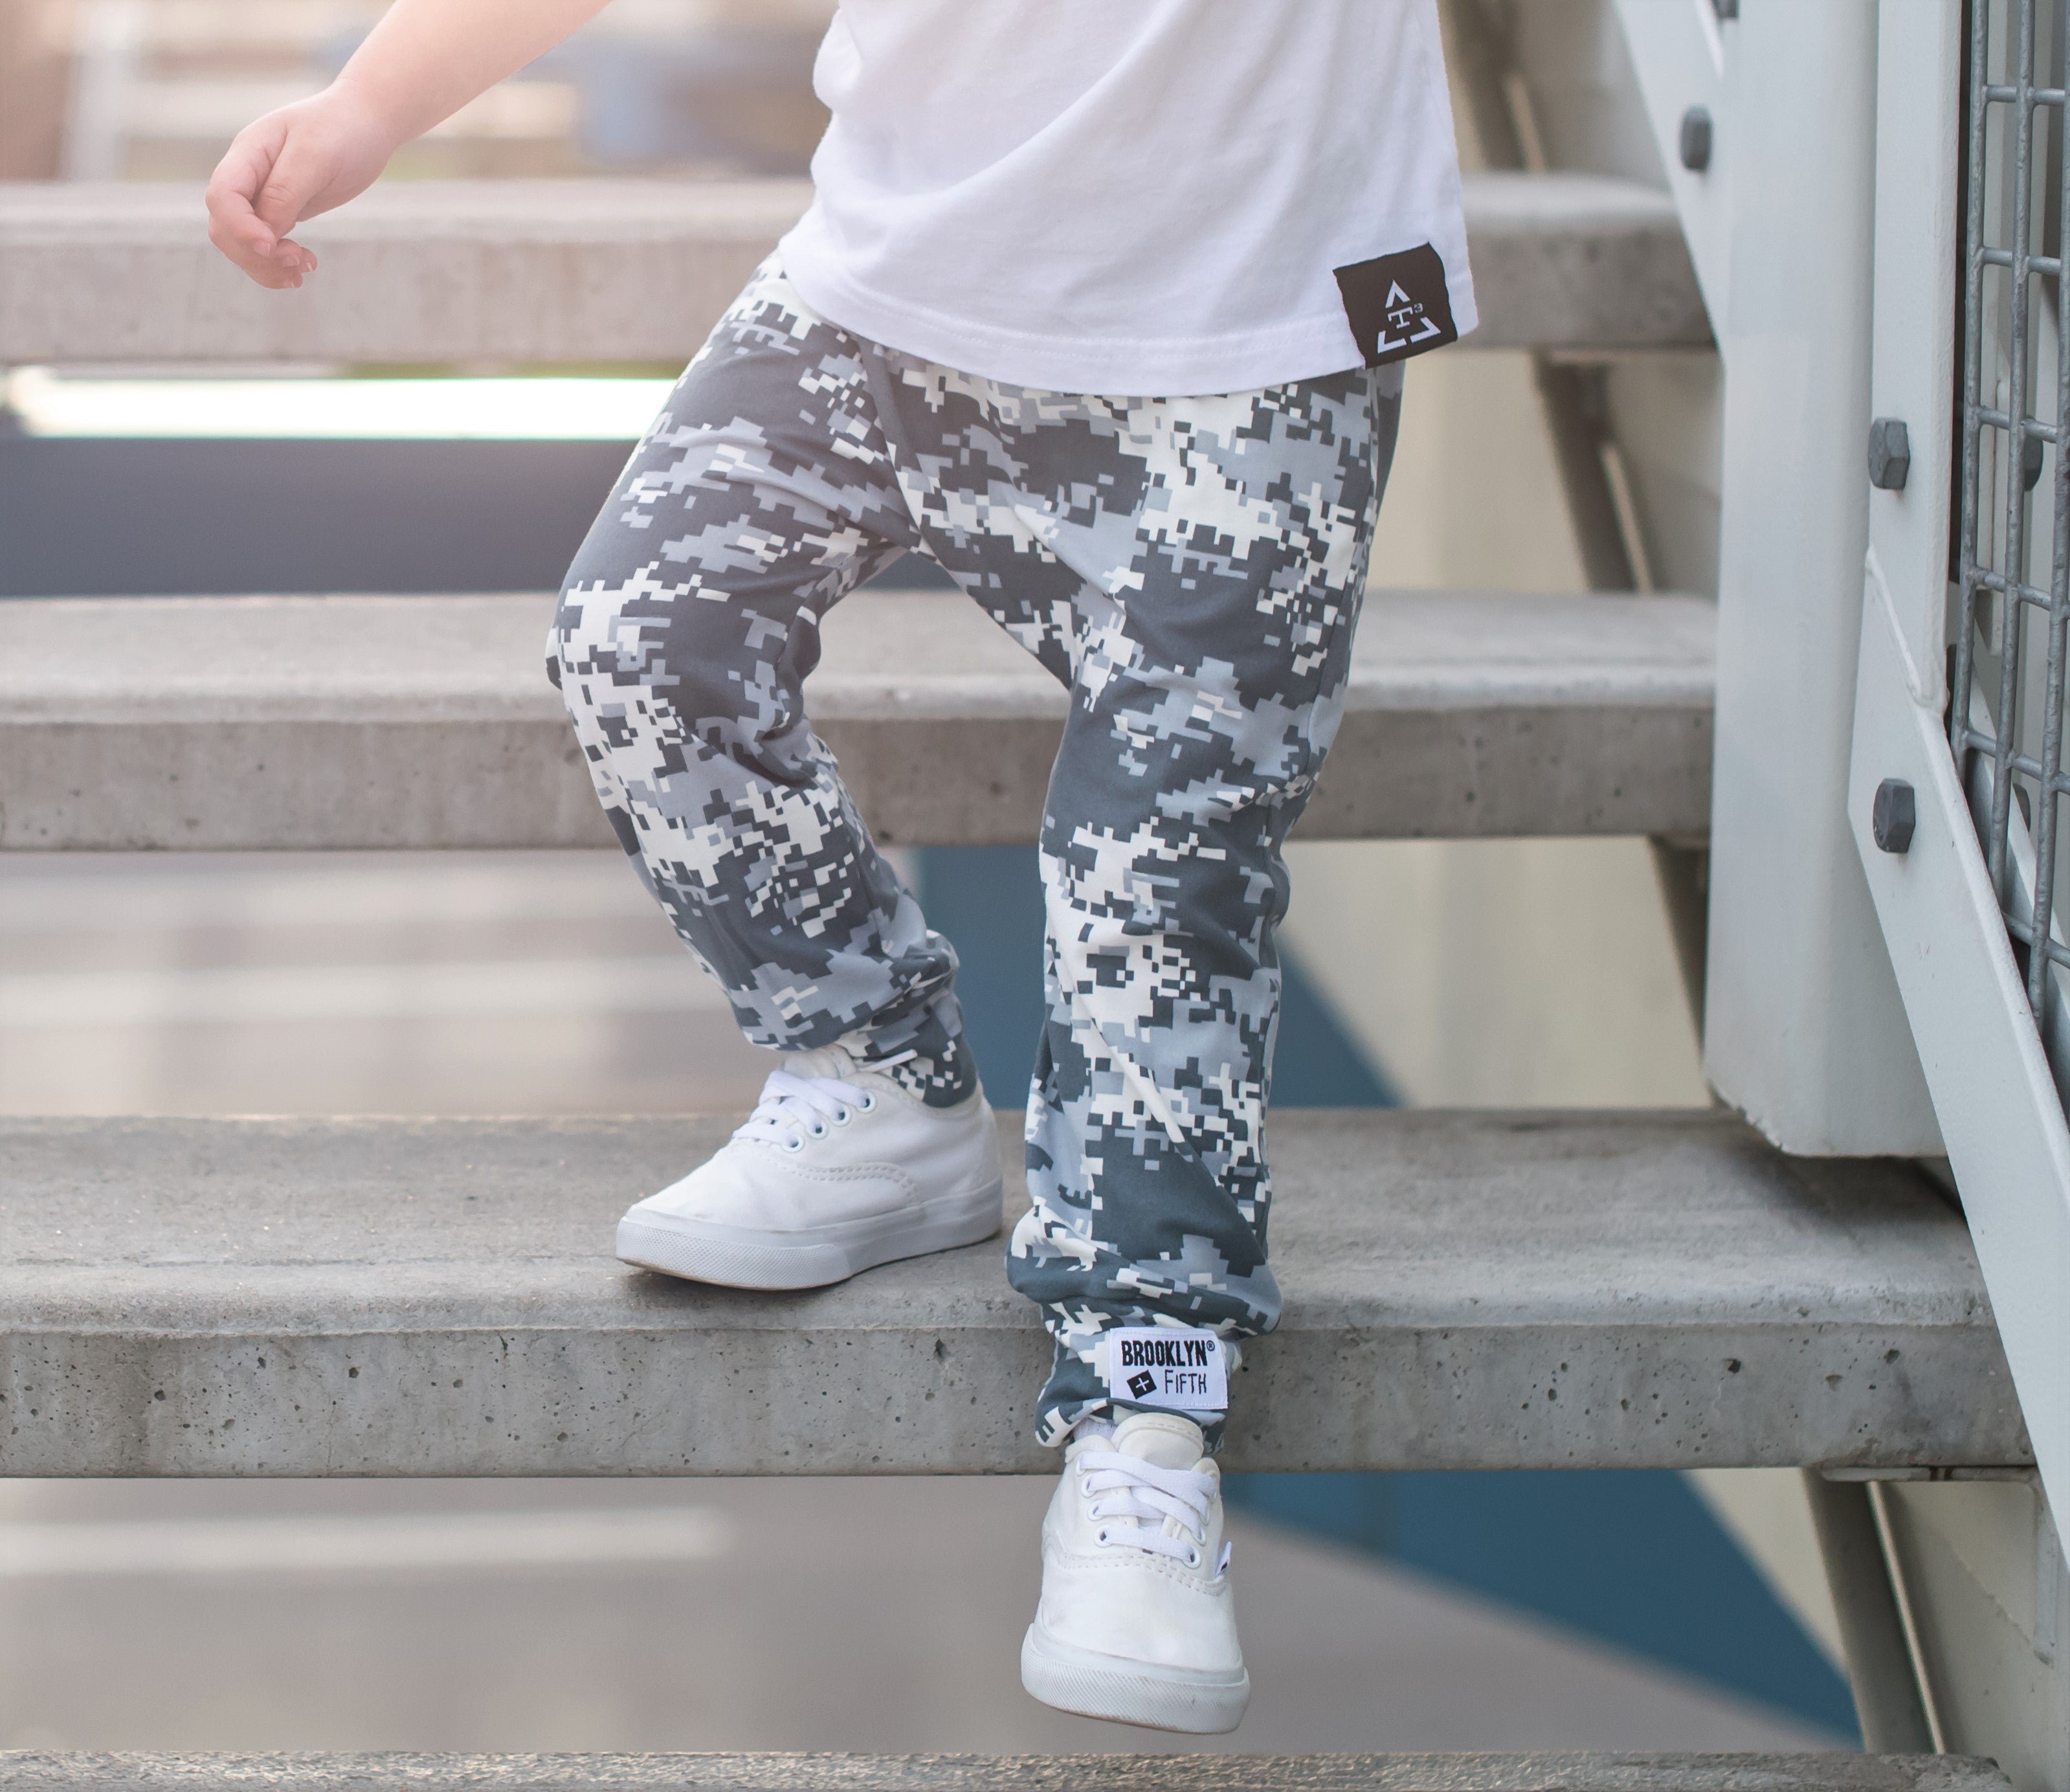 [Harem Pants] - Brooklyn + Fifth Toddler Camo Harem Pants. Stylish Toddler Pants. Camo Pants for boys. Soft toddler Pants. Infant Camo Pants. Baby Pants. Baby Camo Pants. Kids Pants. Made in the USA!